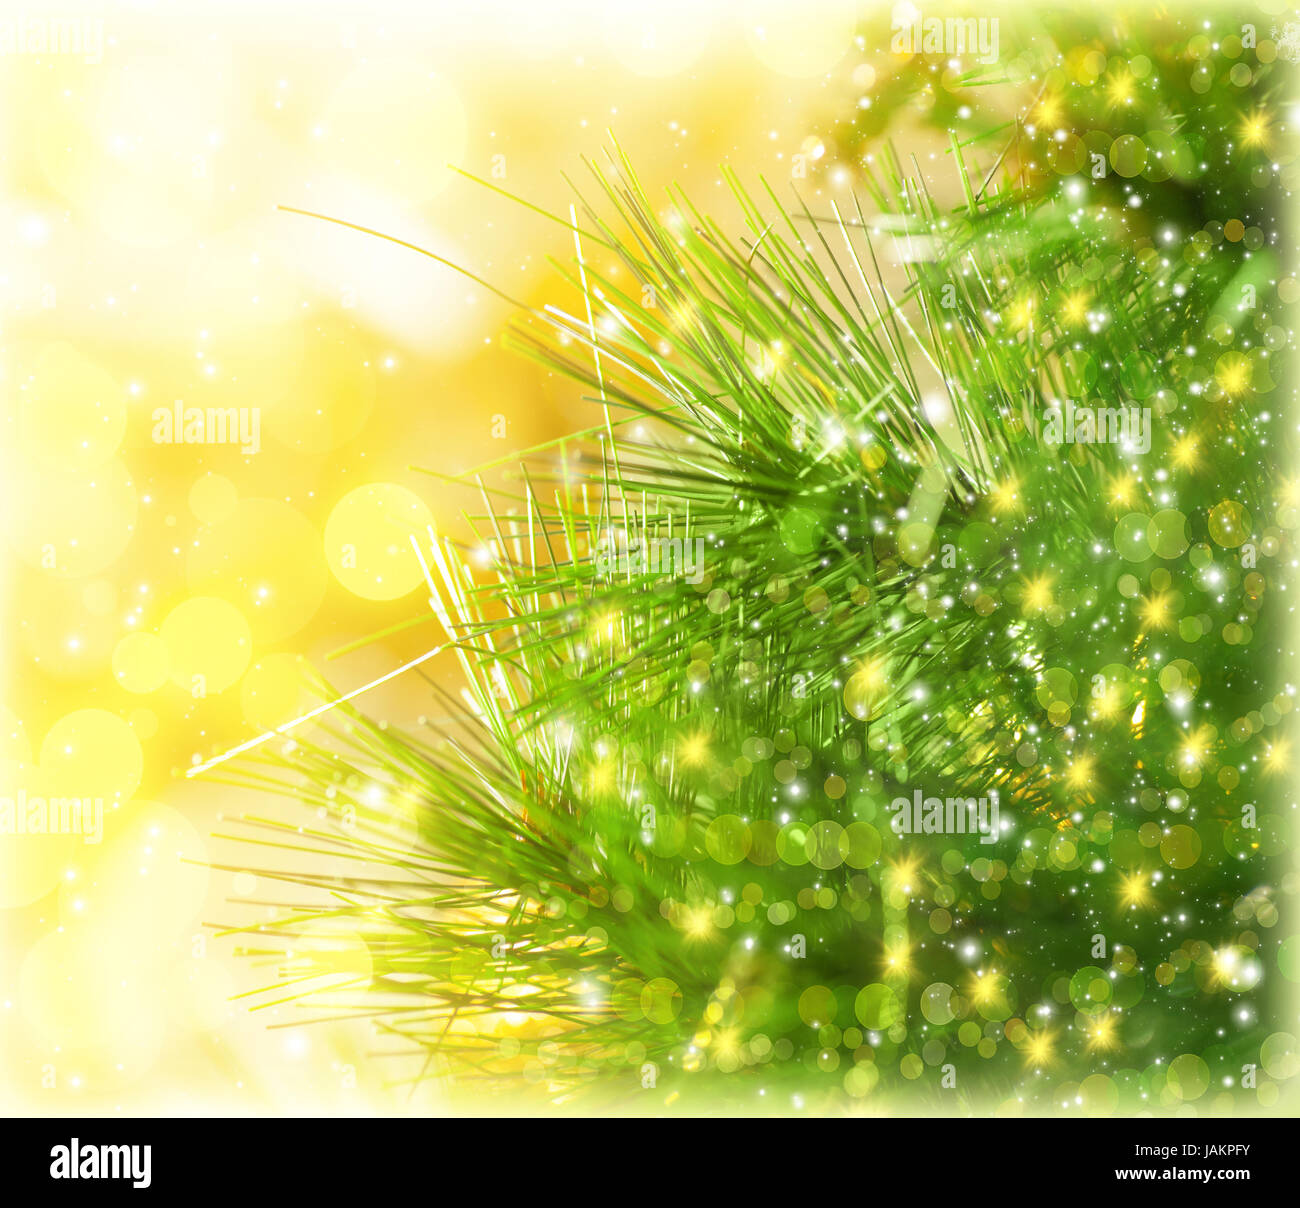 border green fir branch isolated on yellow blurred background christmastime decorations fresh pine tree twig decorated with golden glitters new year